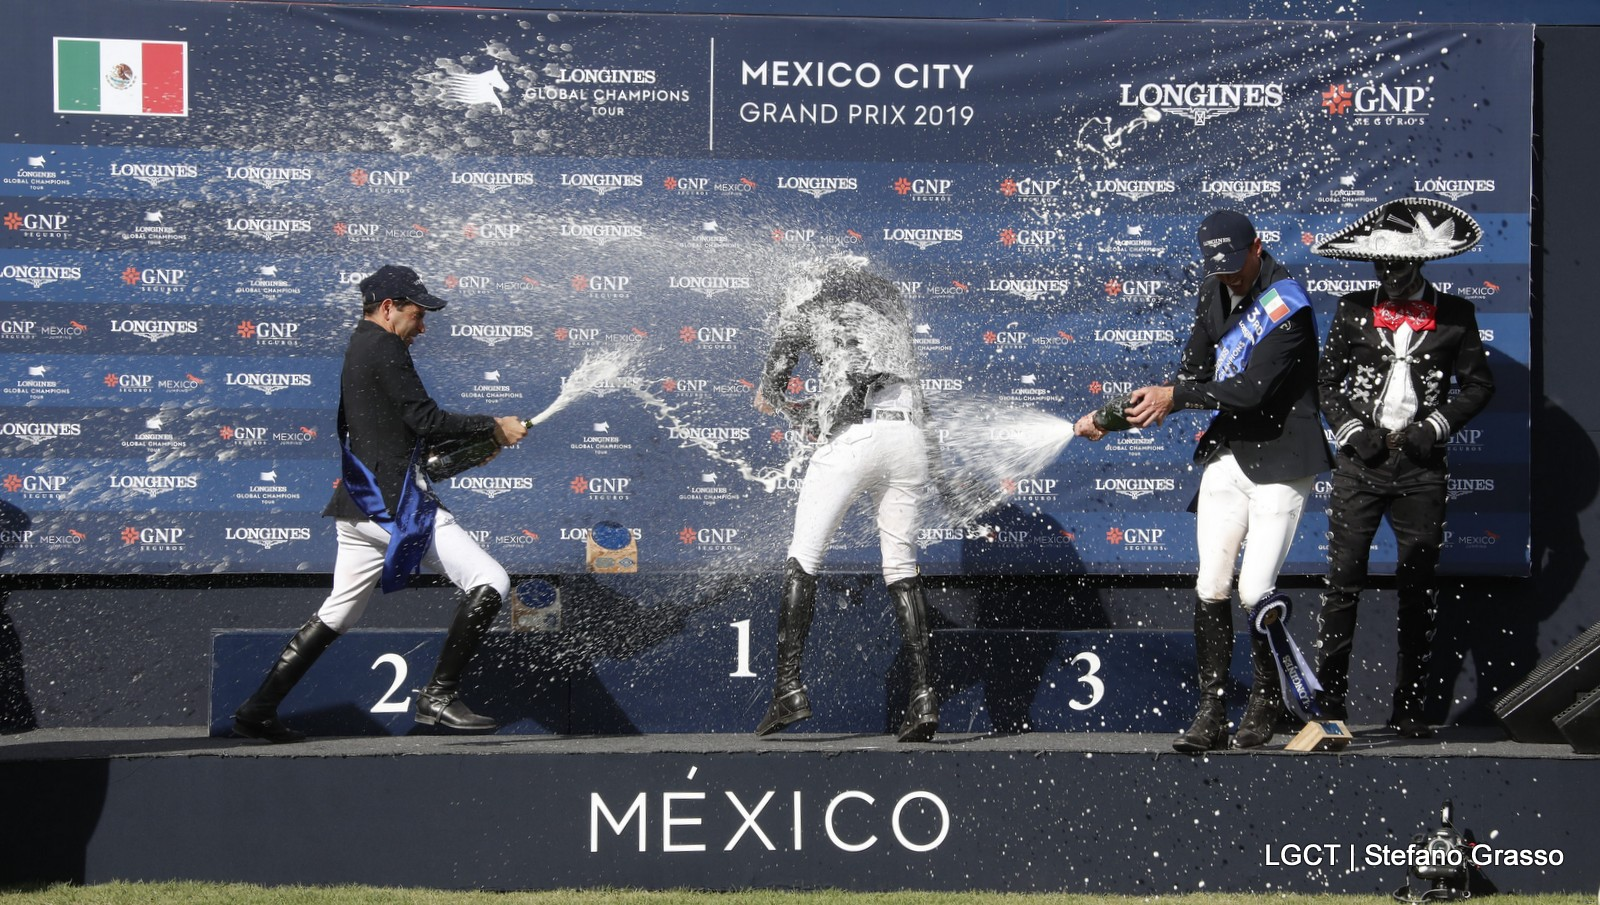 Harrie Smolders derde in Global Champions Tour Mexico City